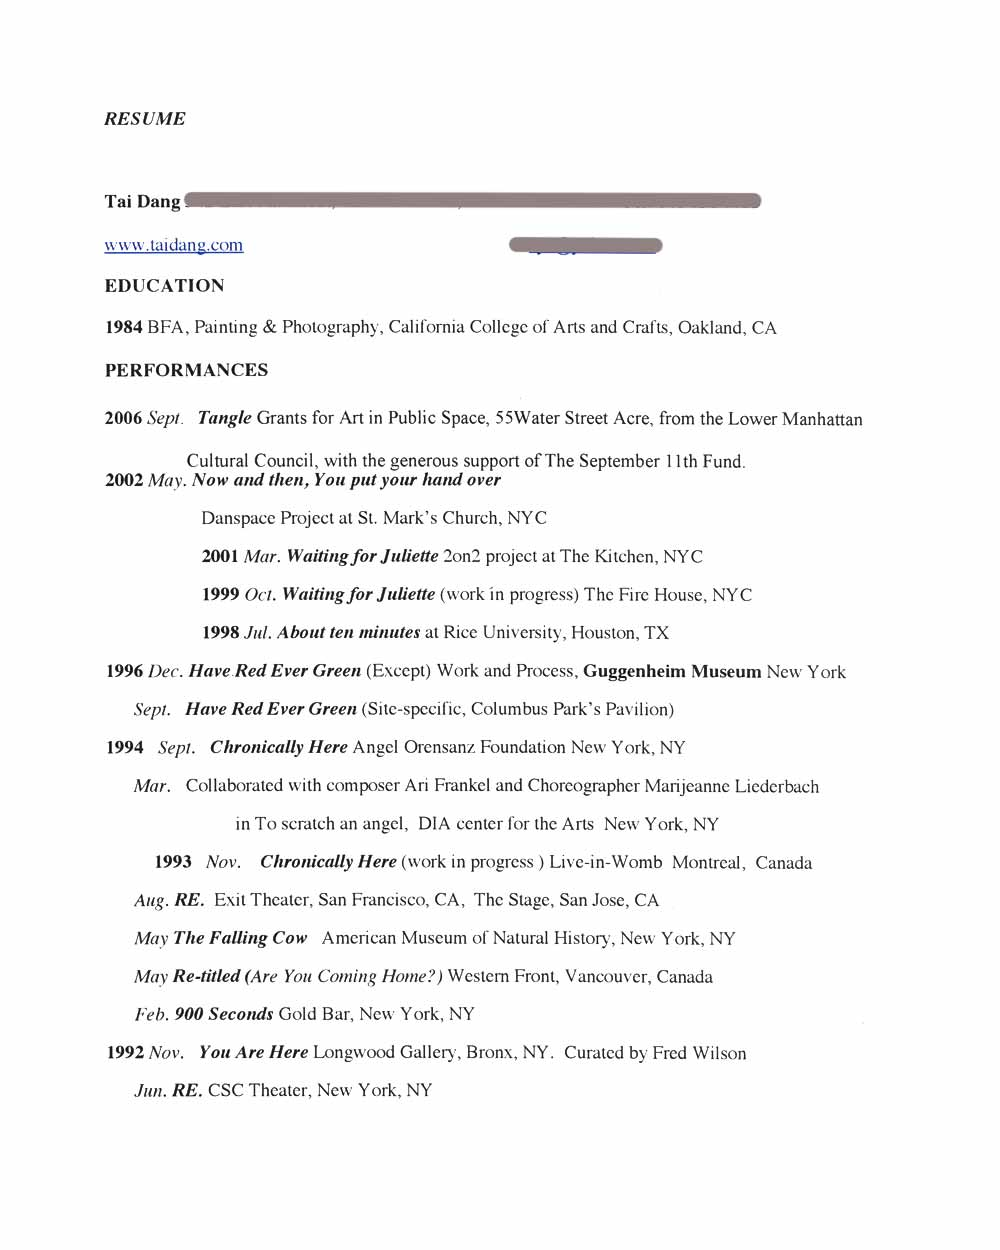 Tai Dang's Resume, pg 1